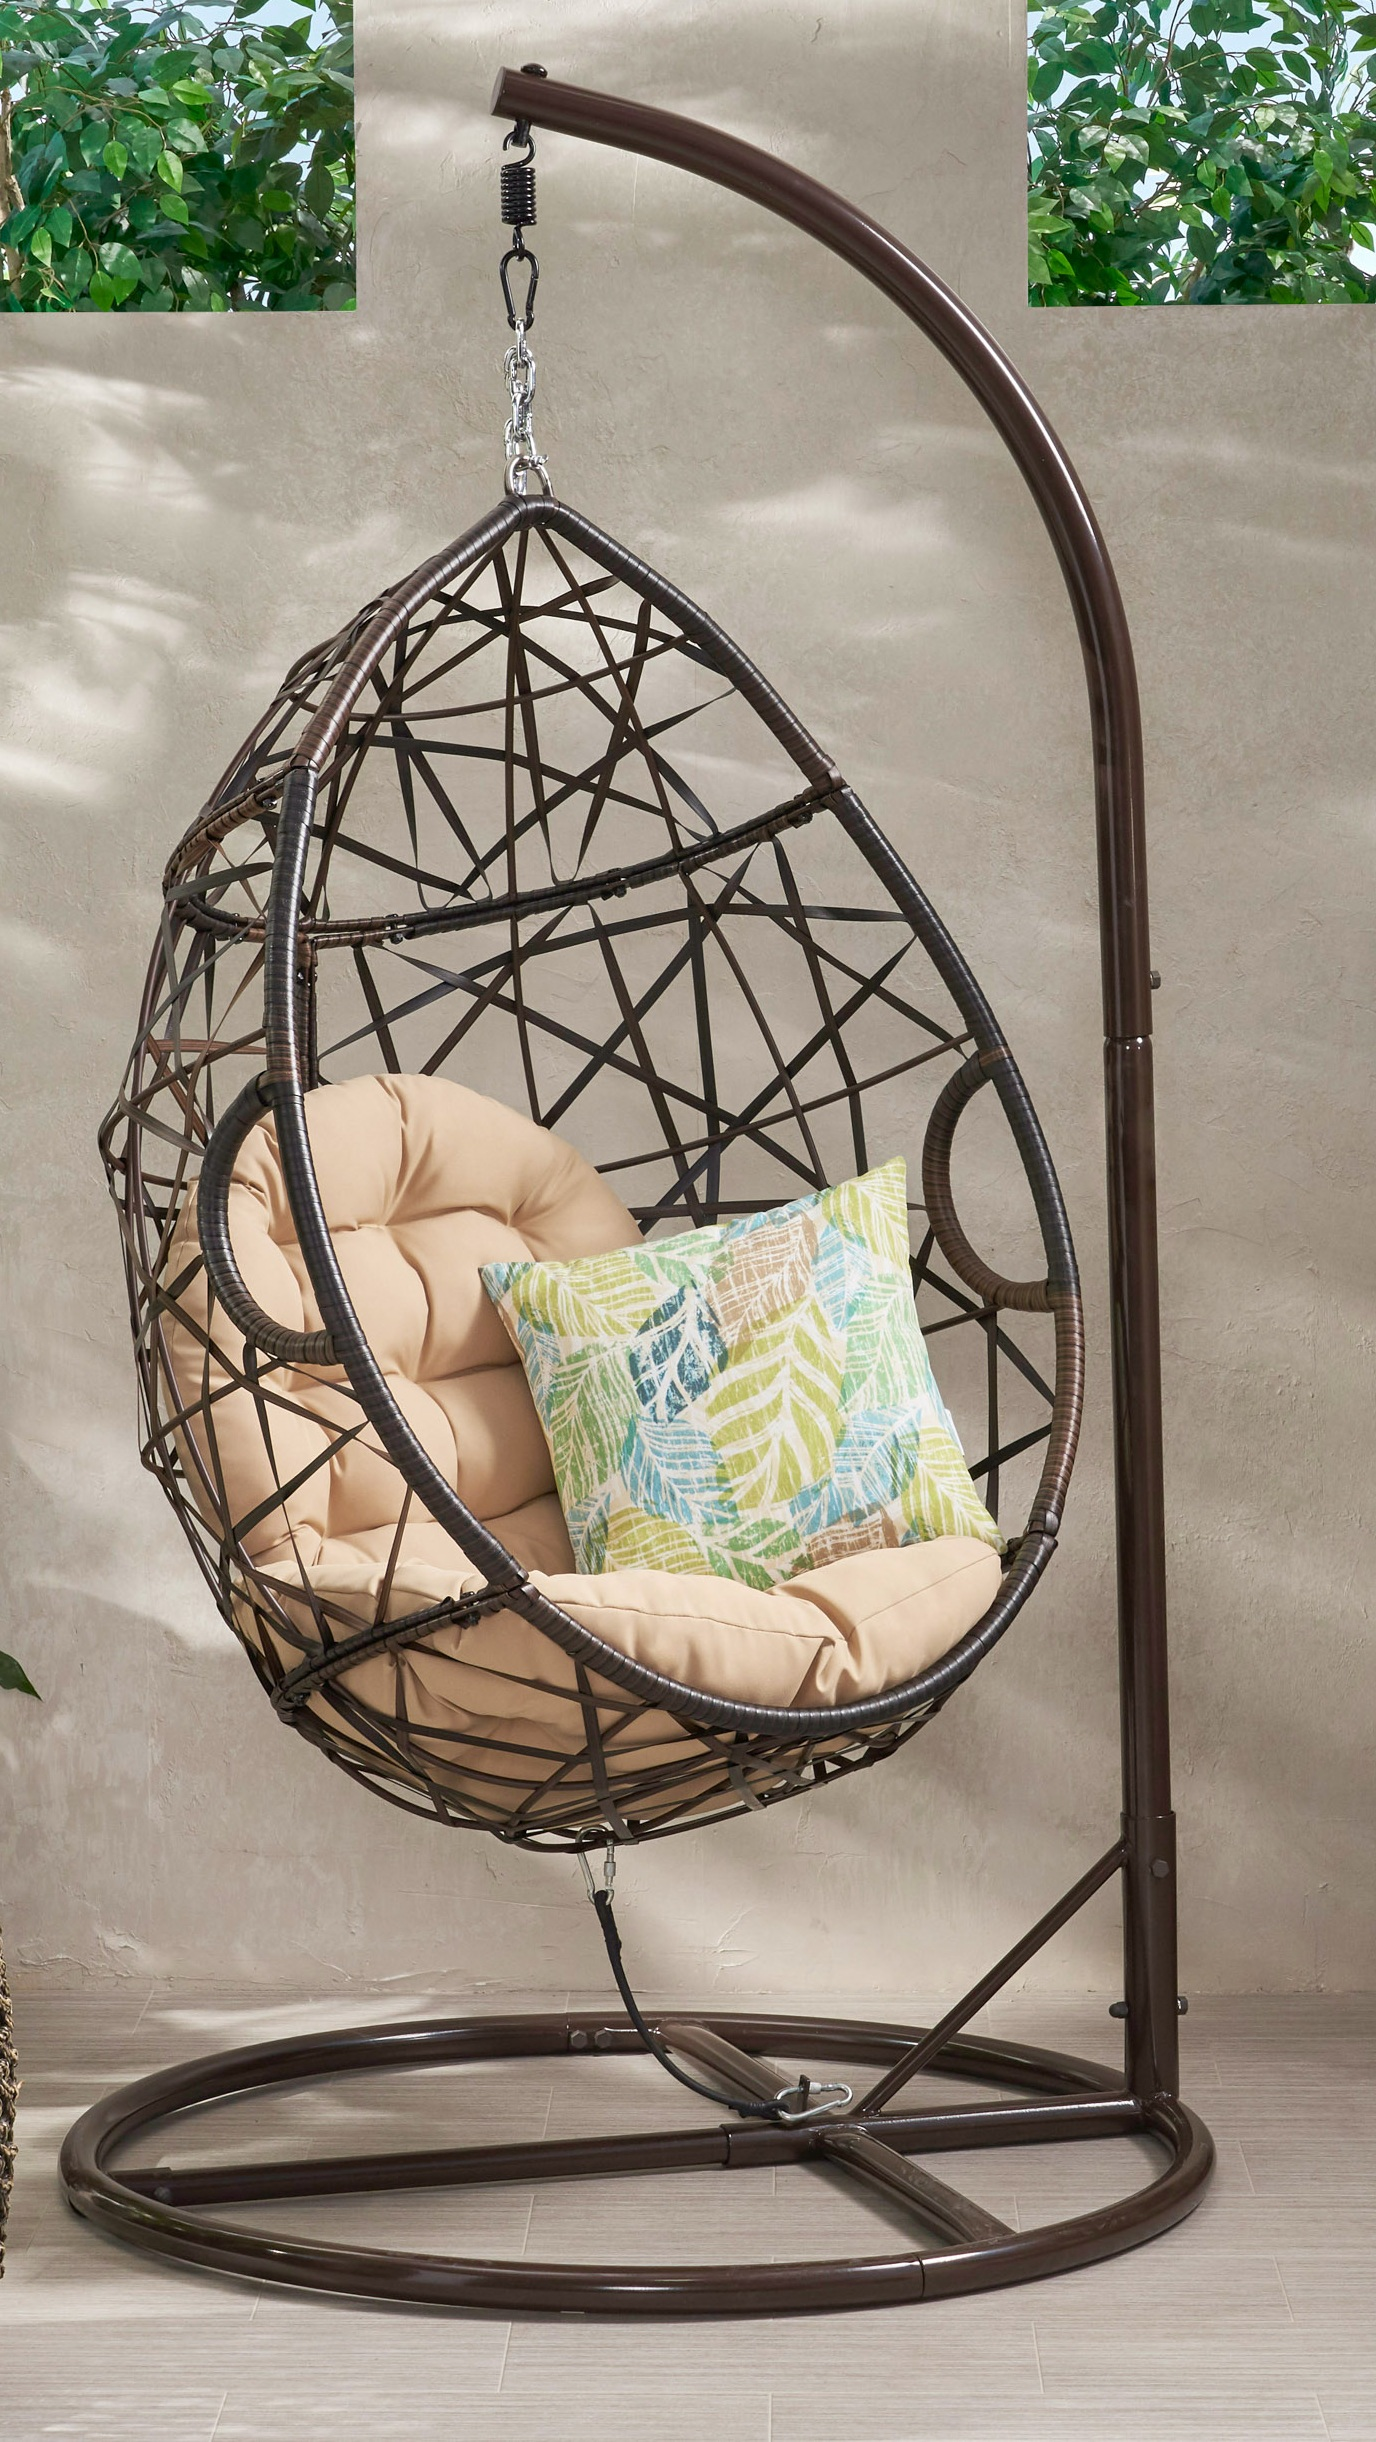 Amazing Egg Swing With Stand and Cushions